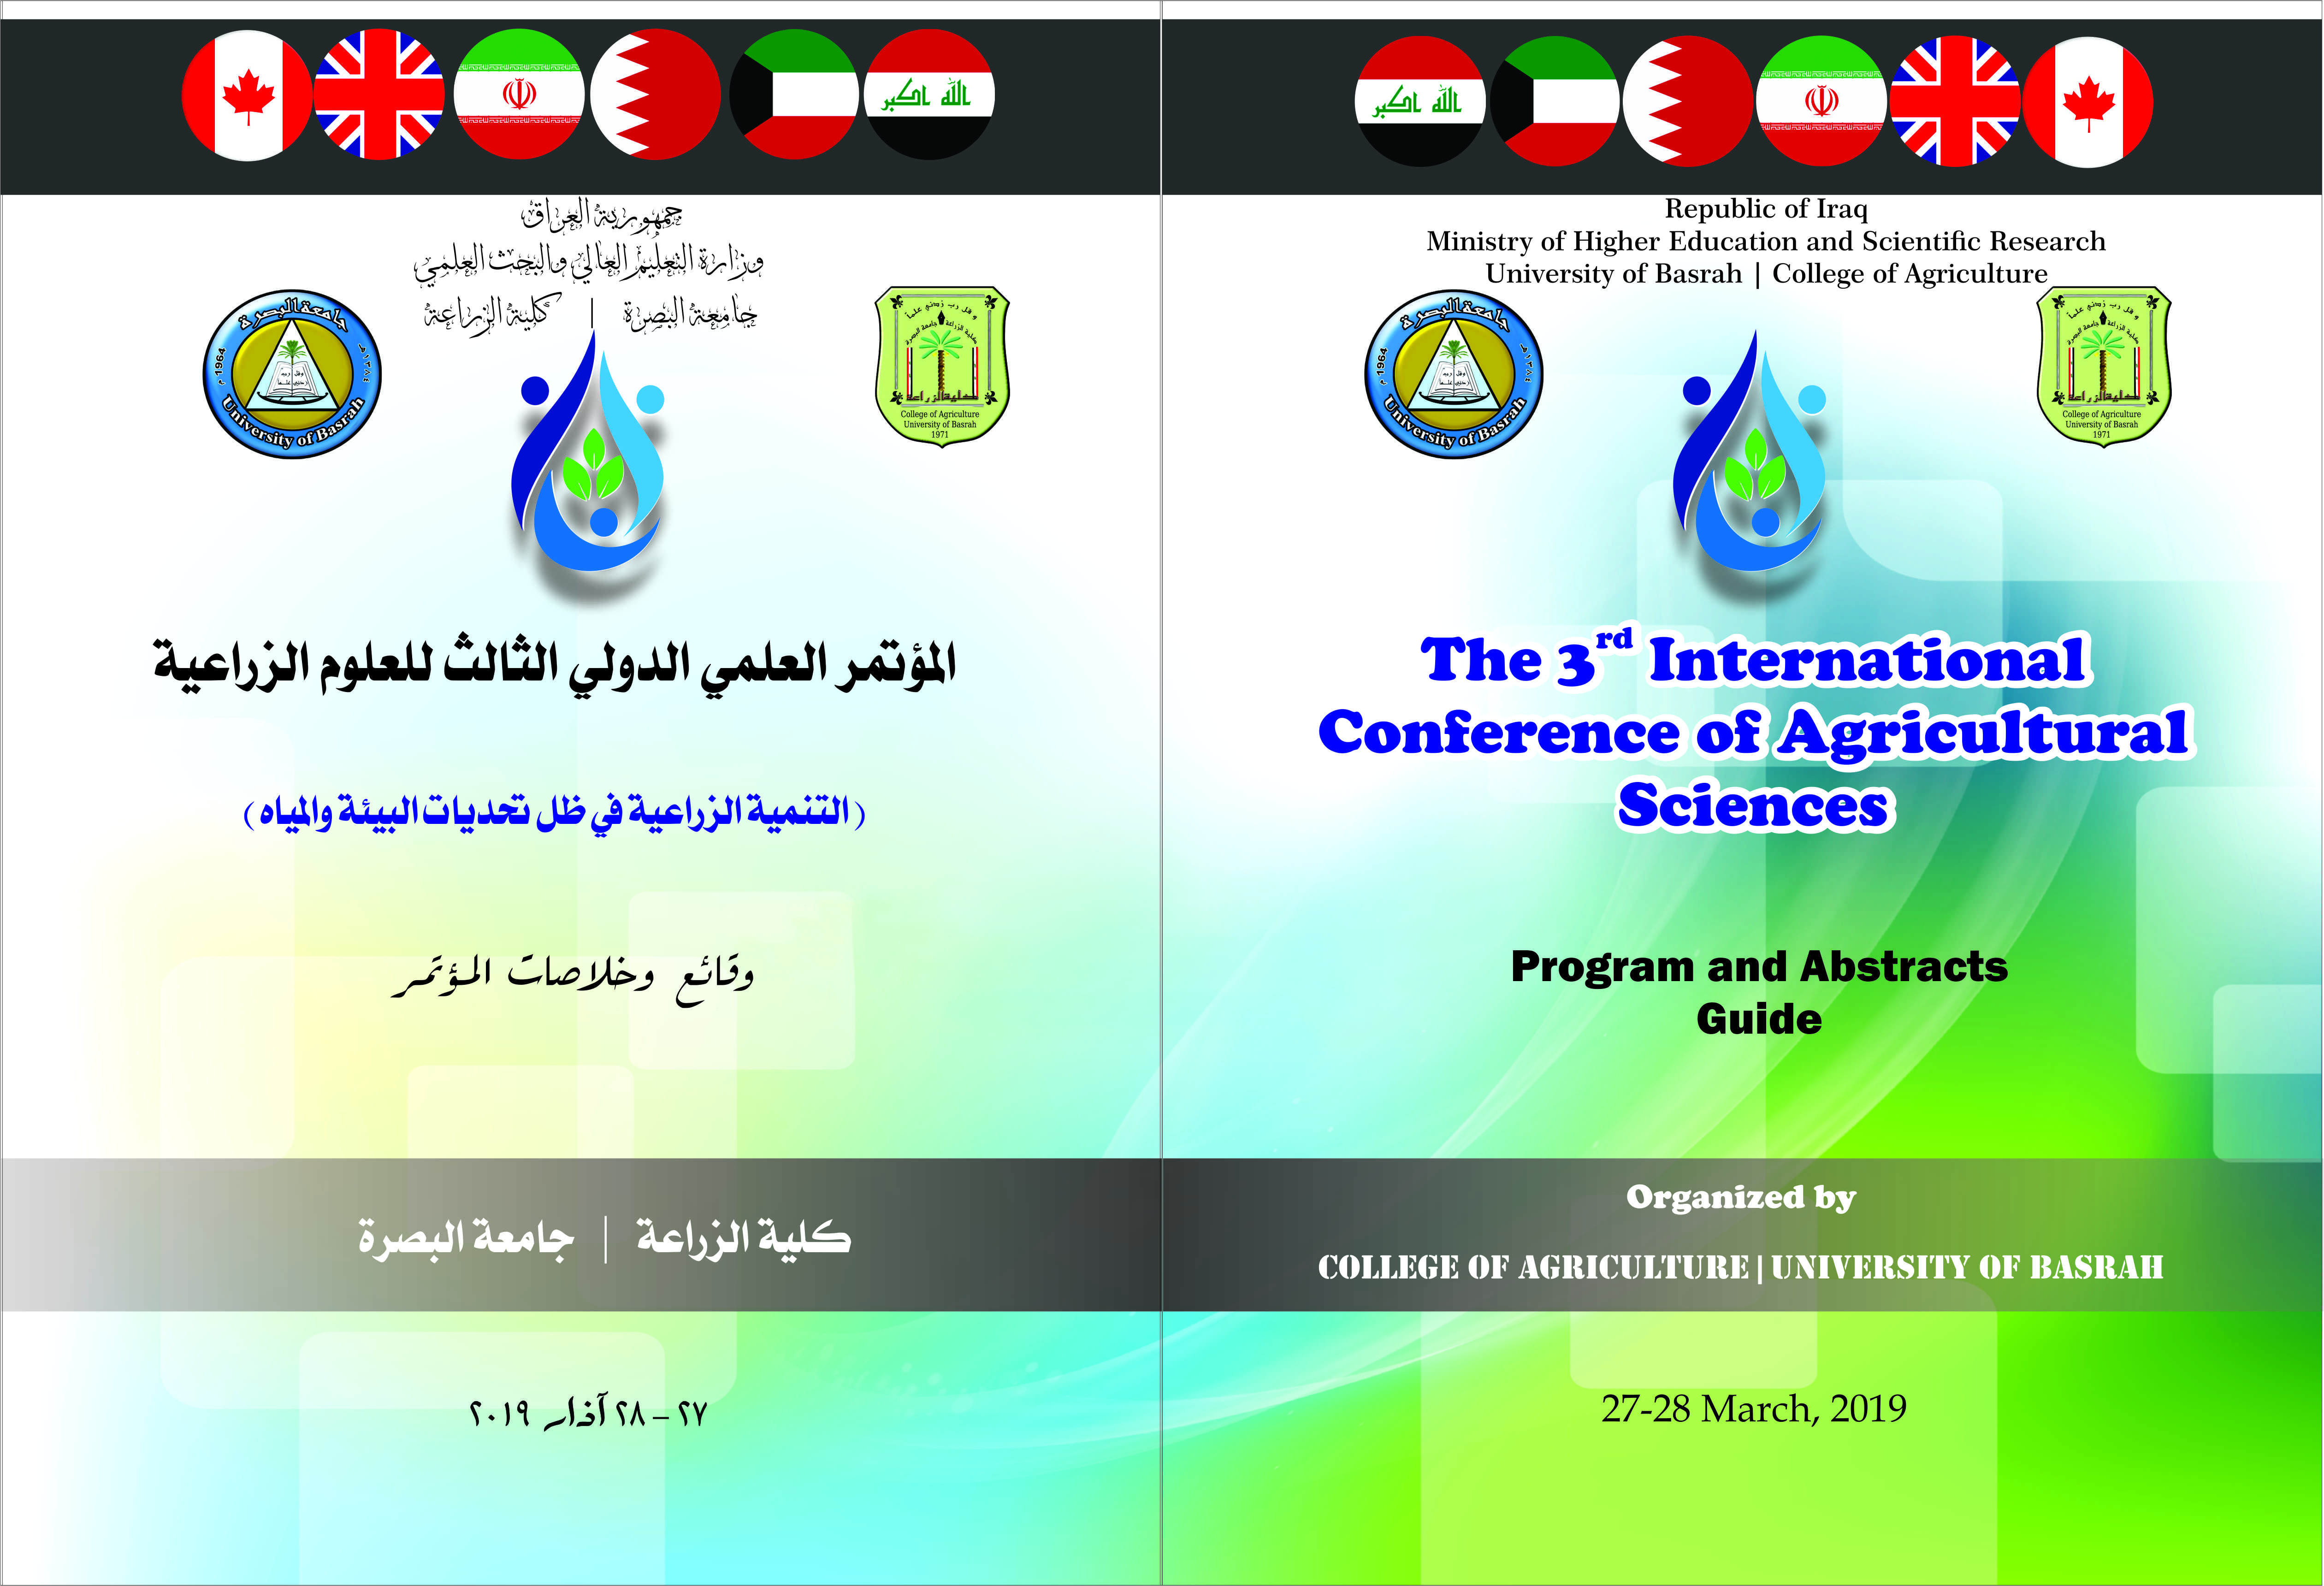 The 3rd International Conference of Agricultural Sciences 27-28 March, 2019